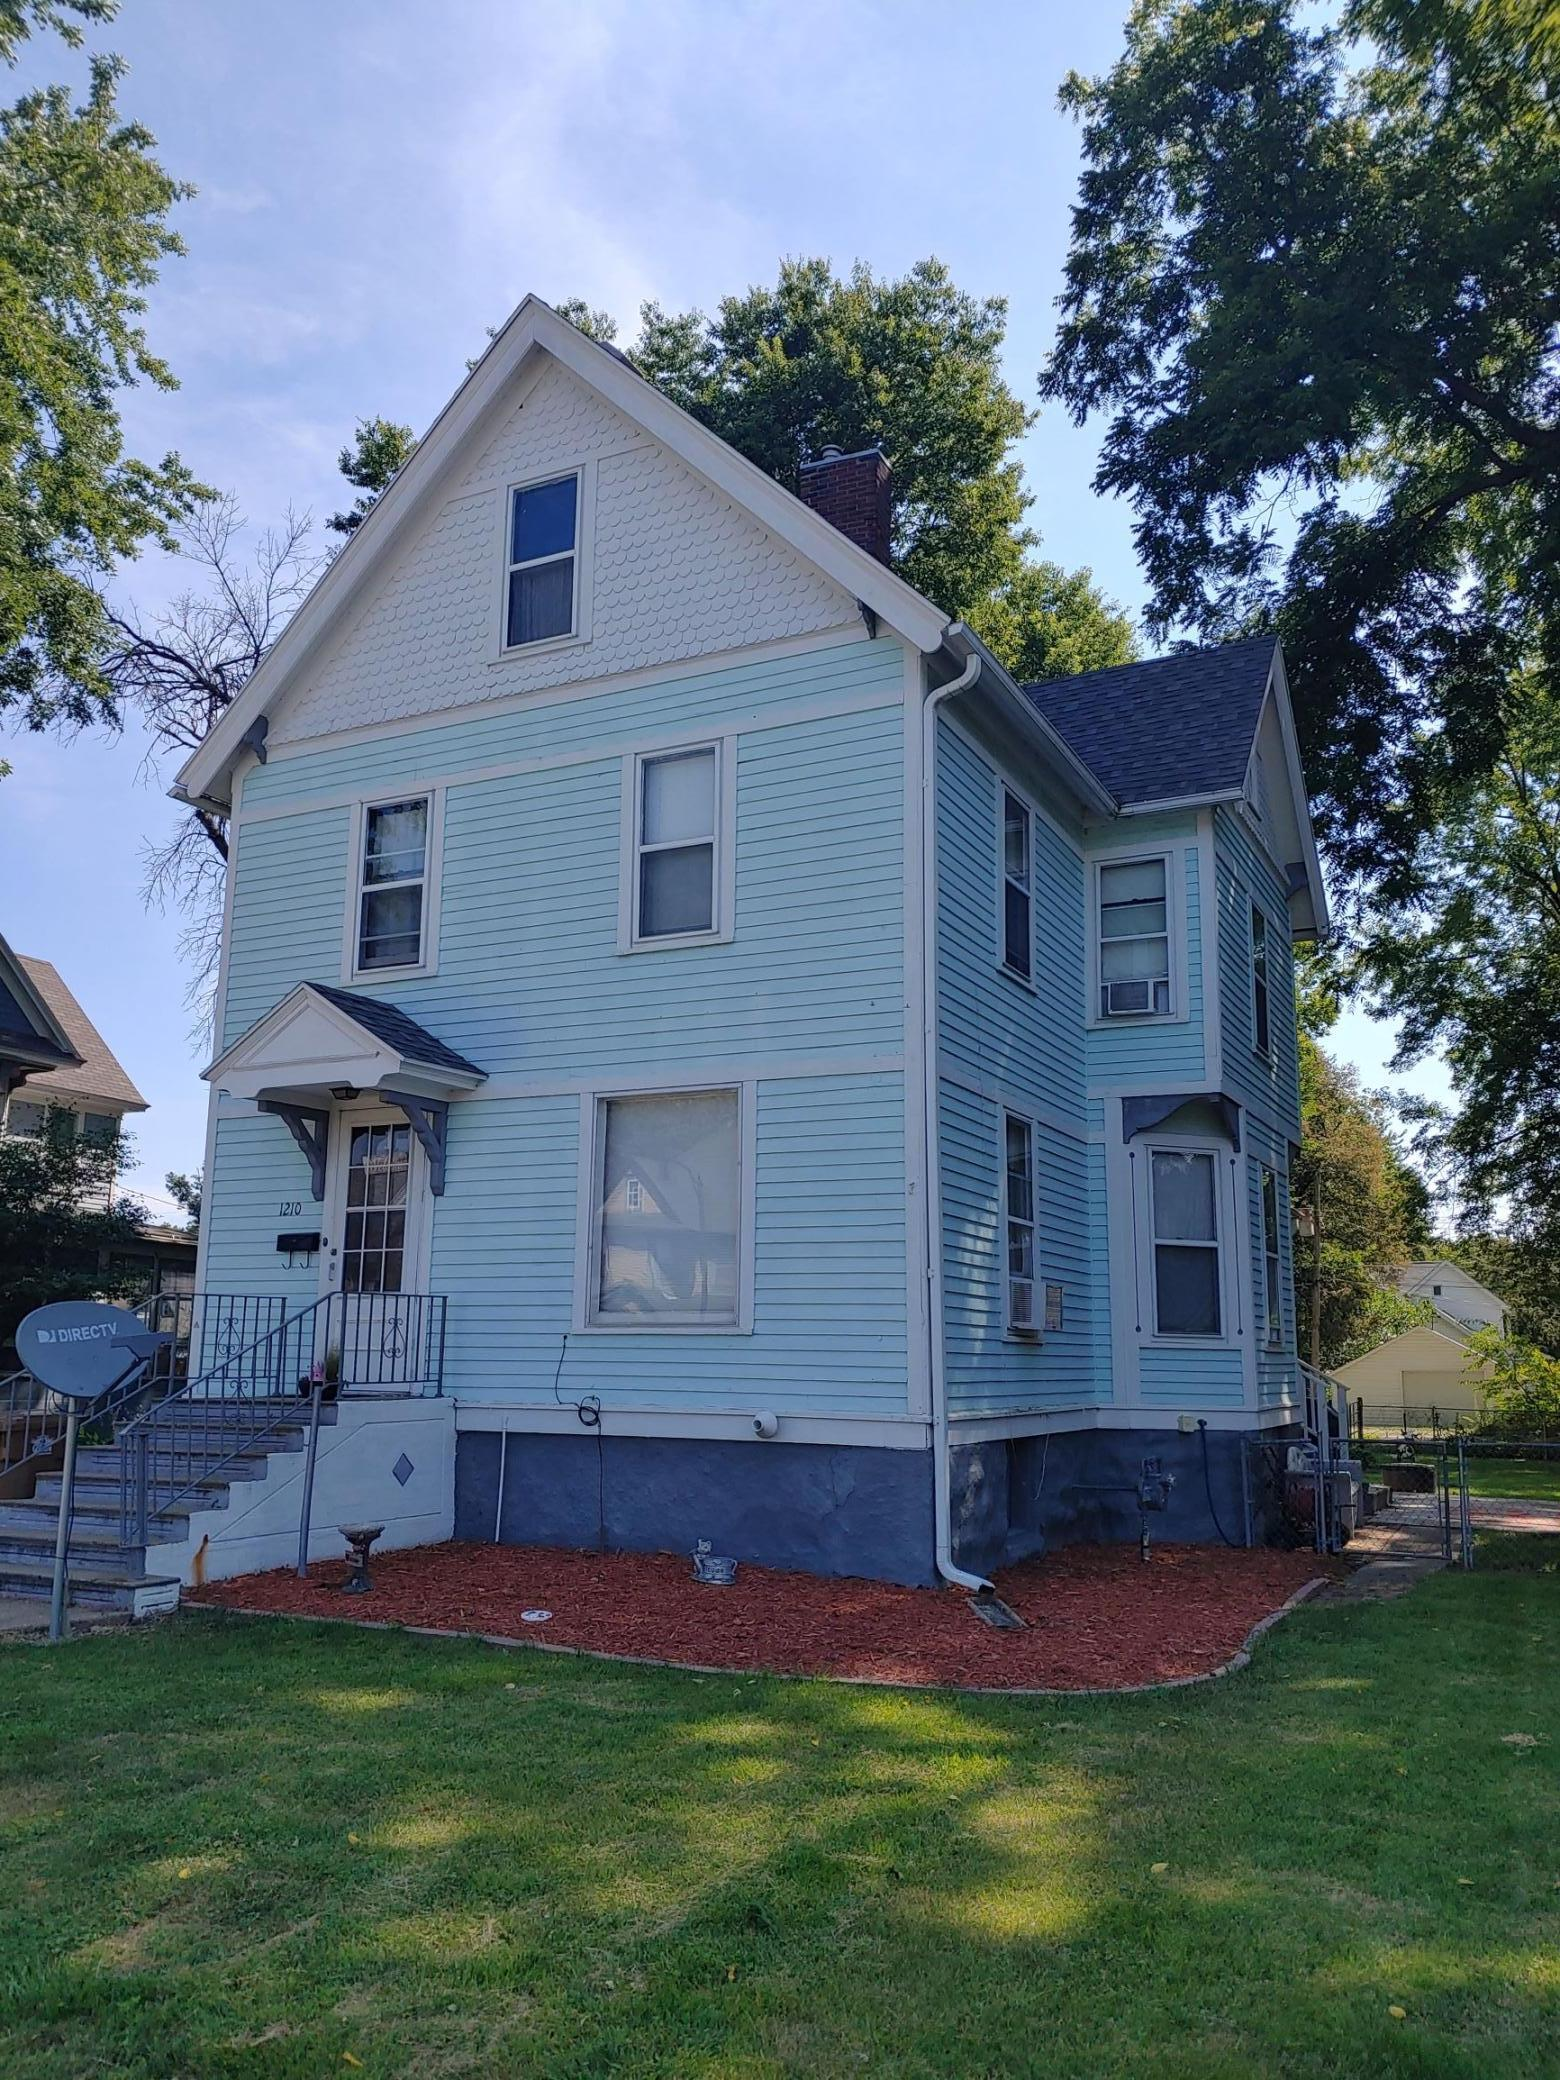 1210 West, Grinnell, Iowa 50112-1648, 3 Bedrooms Bedrooms, ,1 BathroomBathrooms,Single Family,For Sale,West,5637600